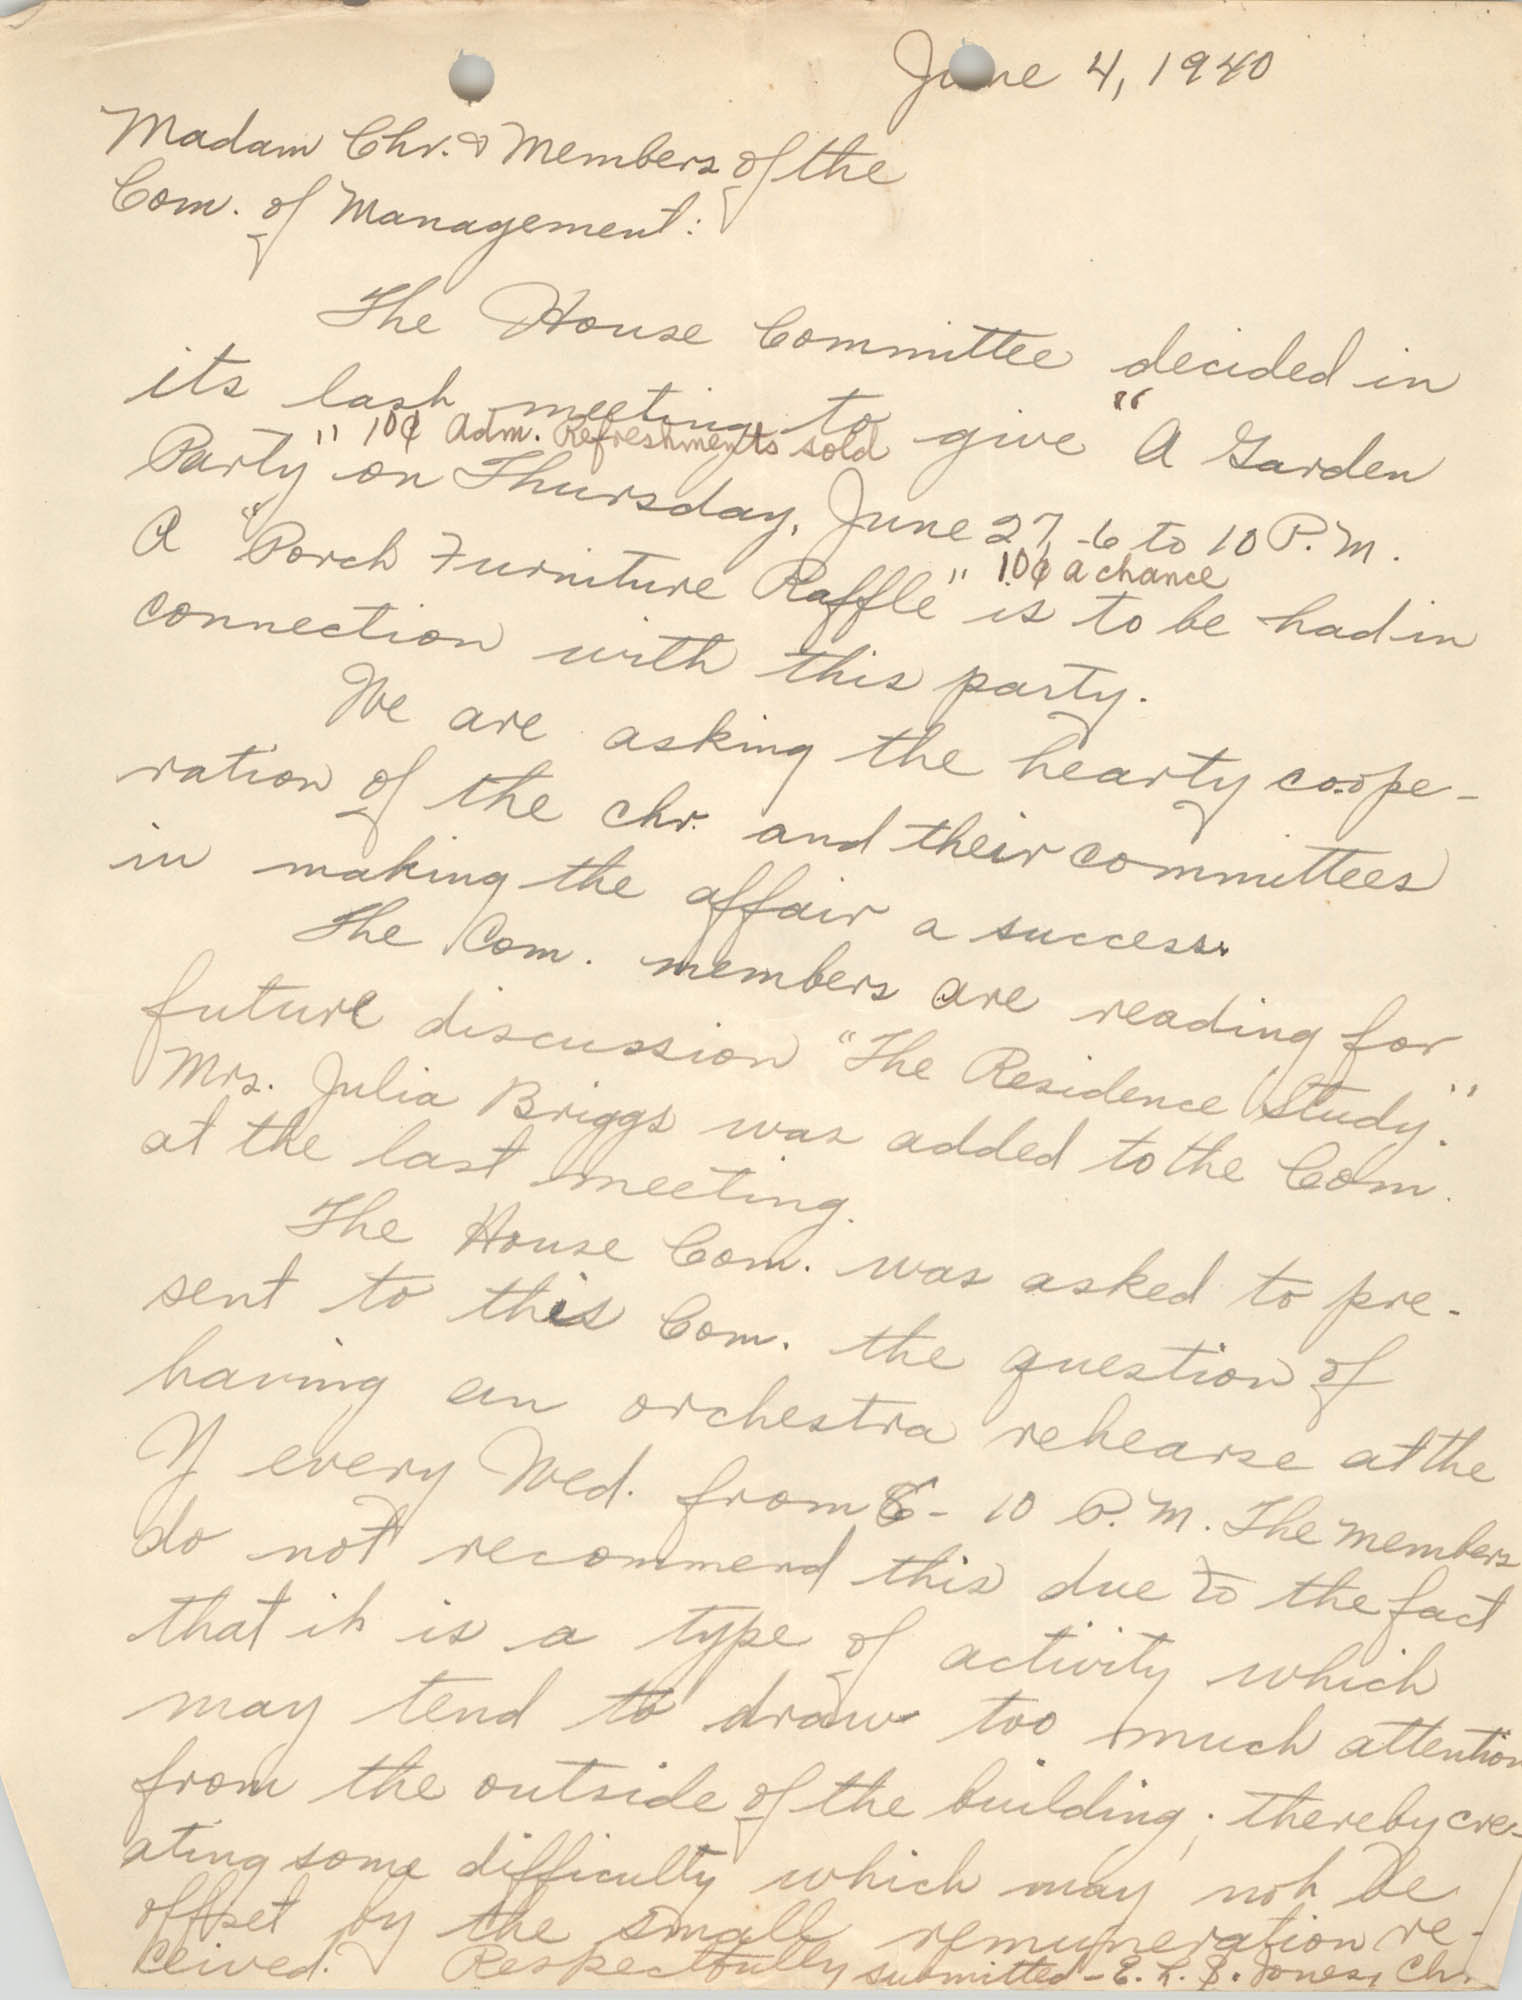 Letter from Ella L. Jones to Committee of Management, Coming Street Y.W.C.A., June 4, 1940